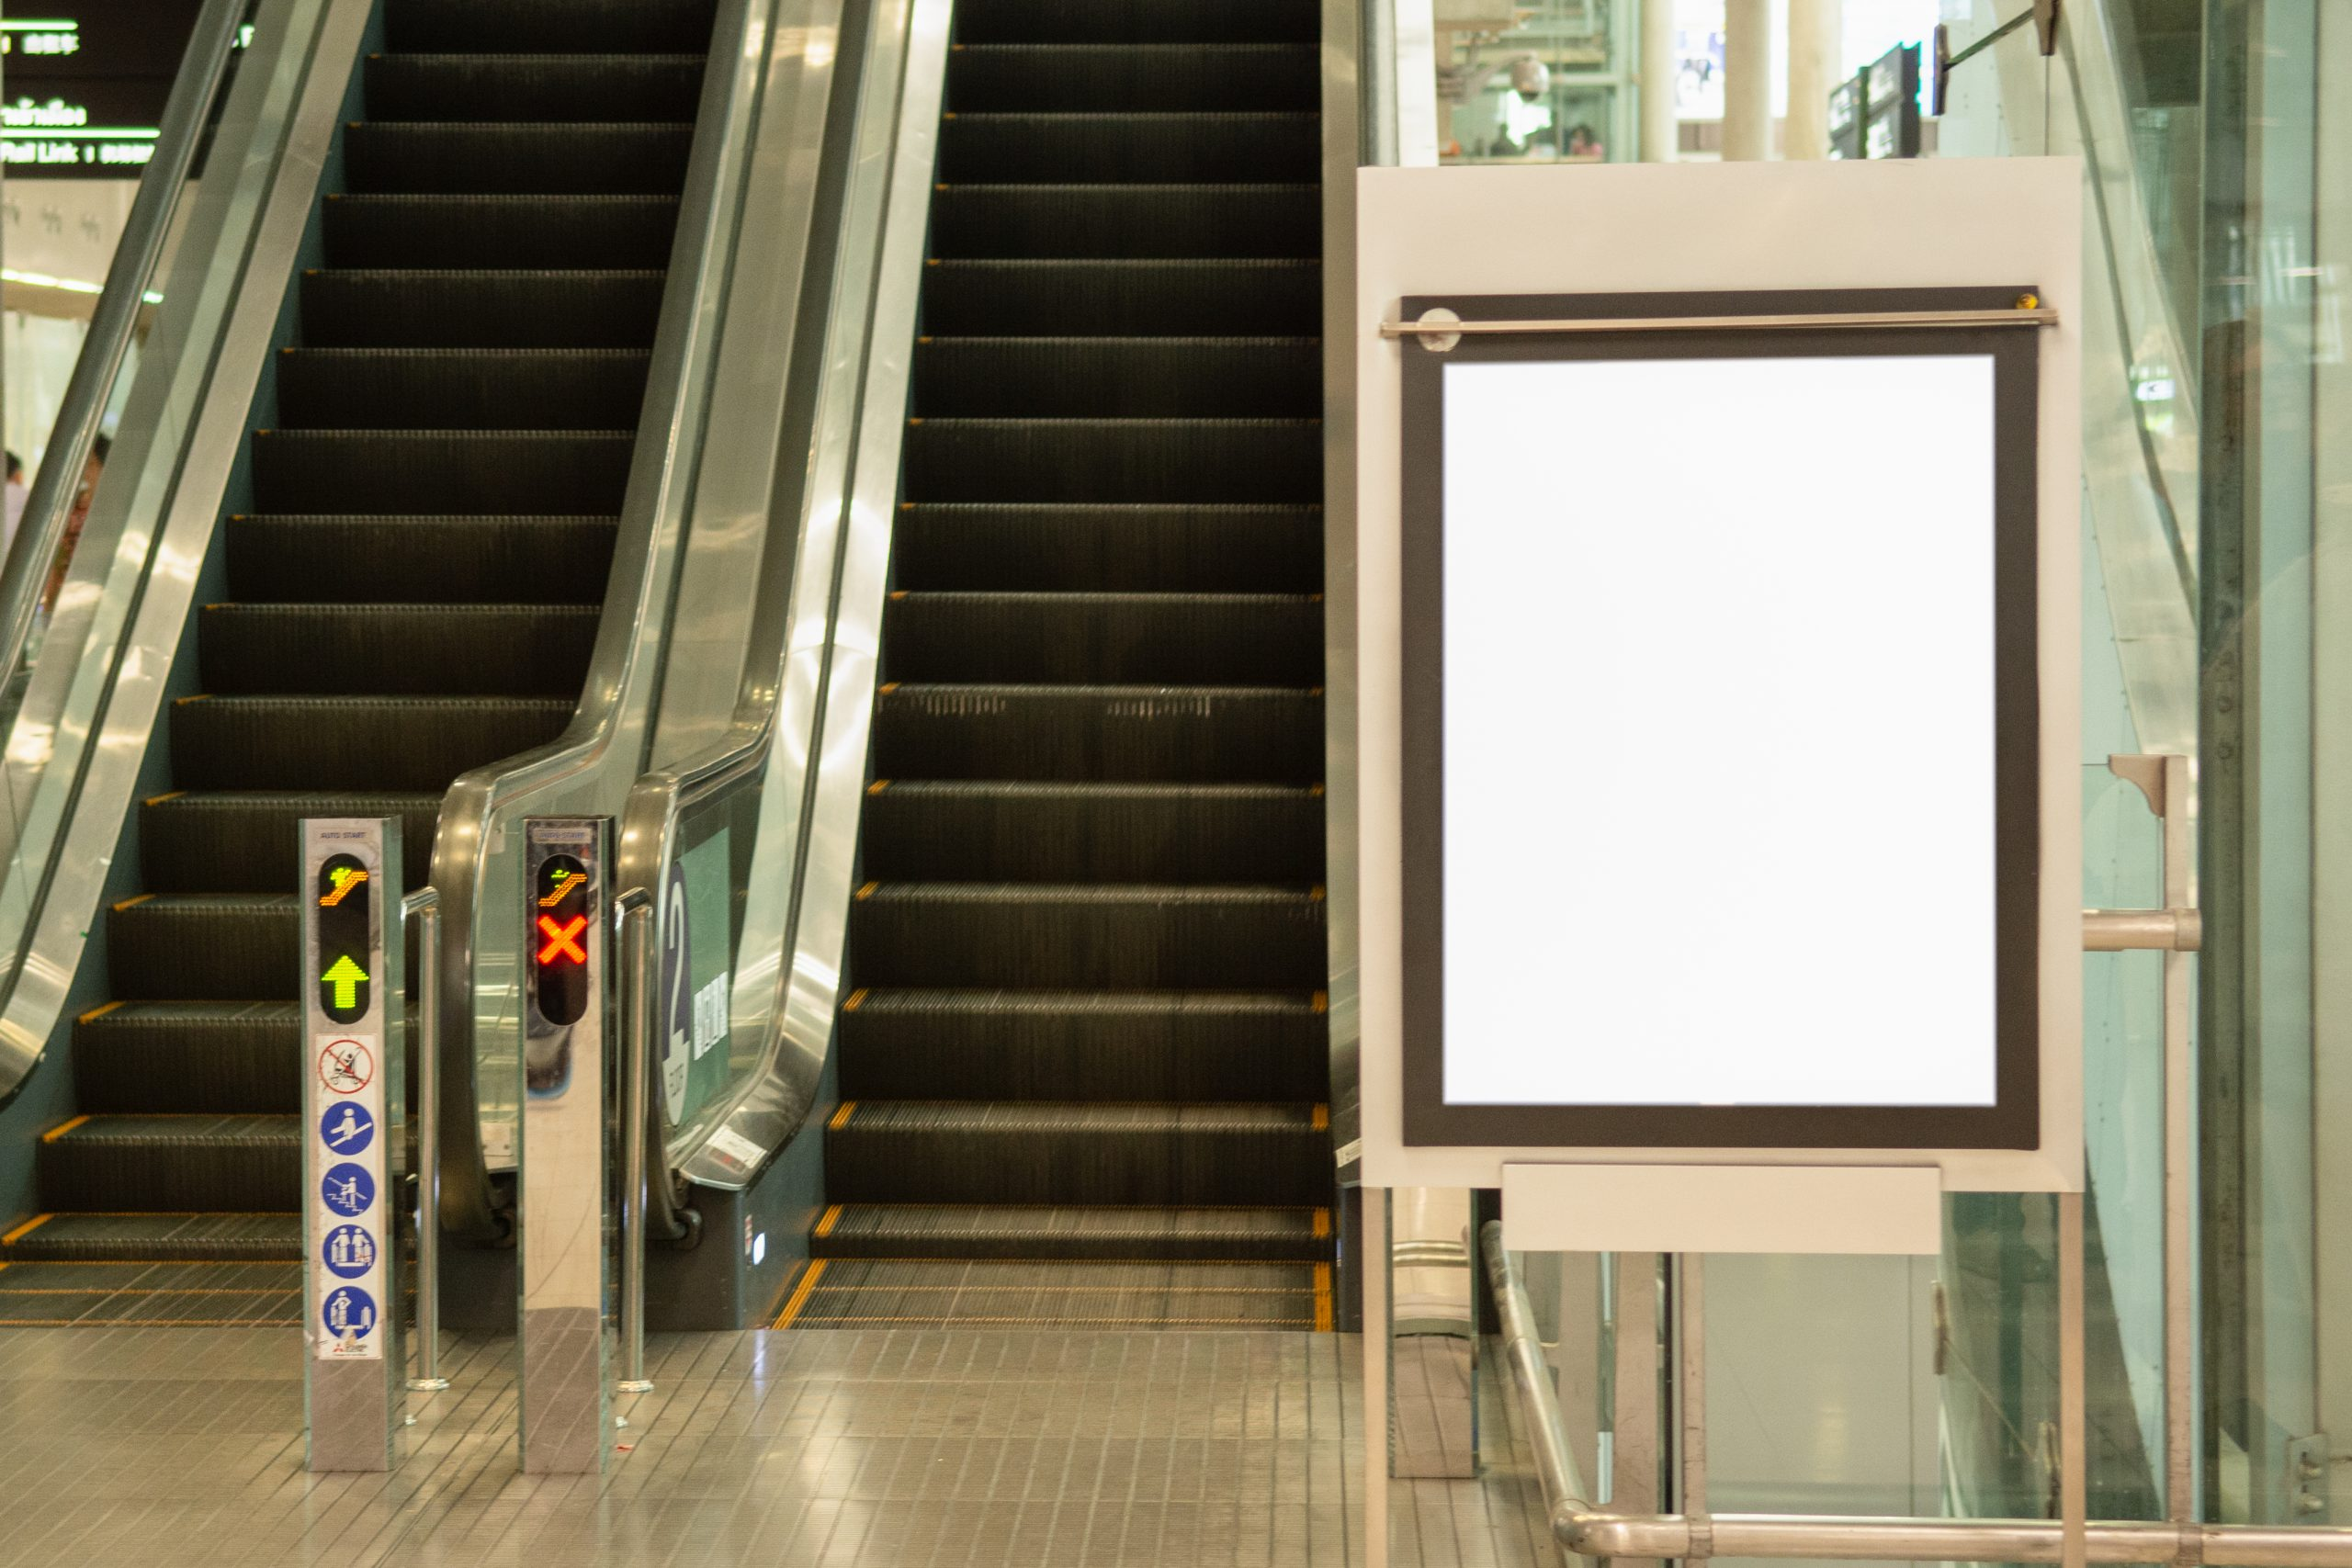 blank-advertising-billboard-at-airport-large-lcd-advertisement